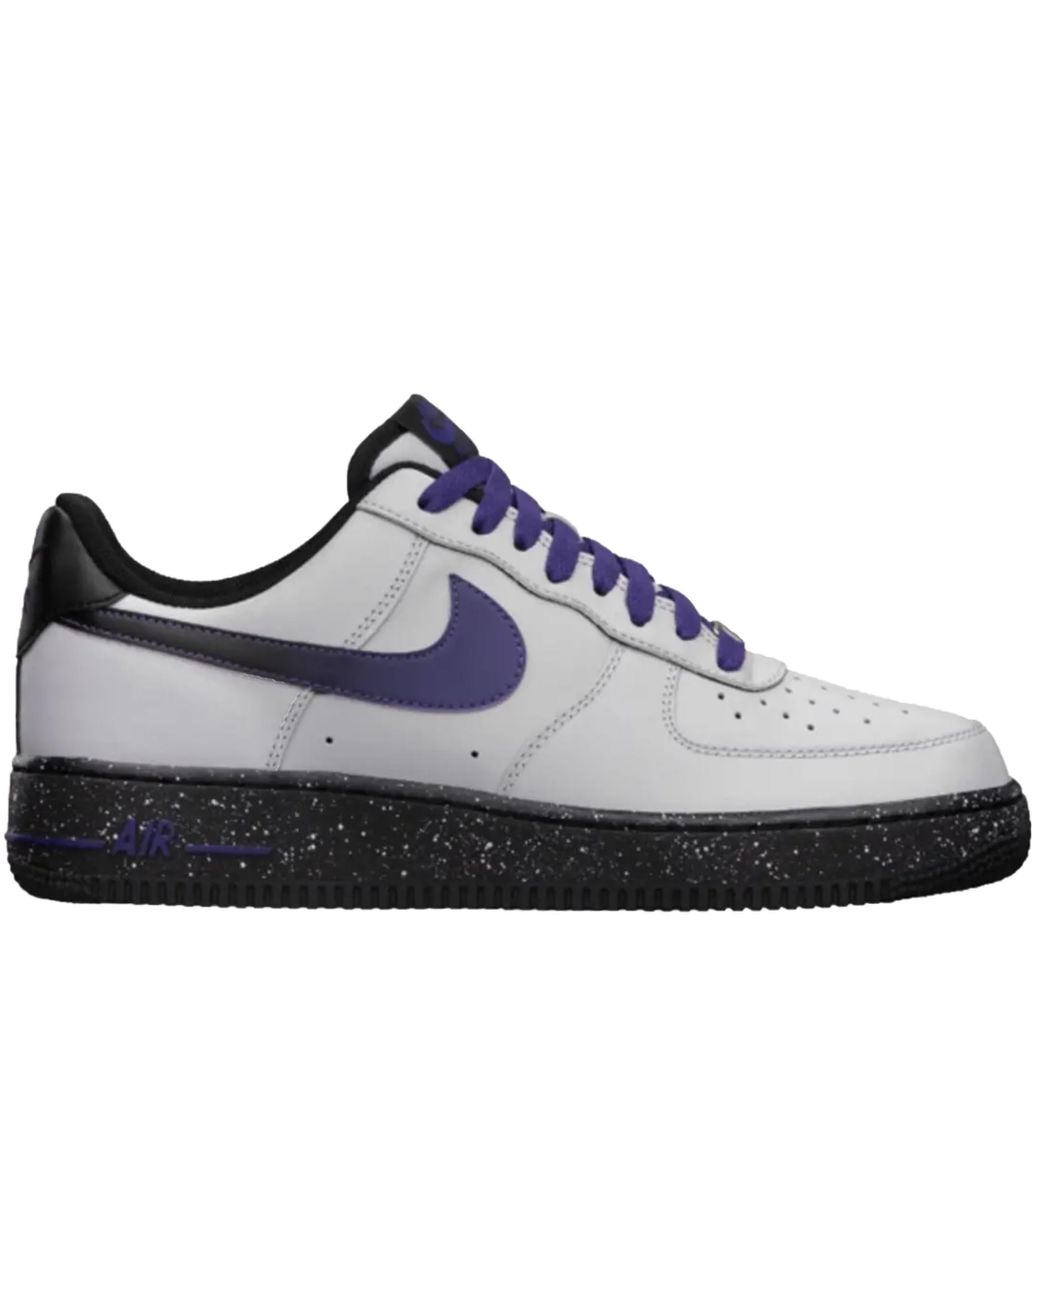 low priced 740be 02a7c Men's Air Force 1 Low Wolf Gray Court Purple